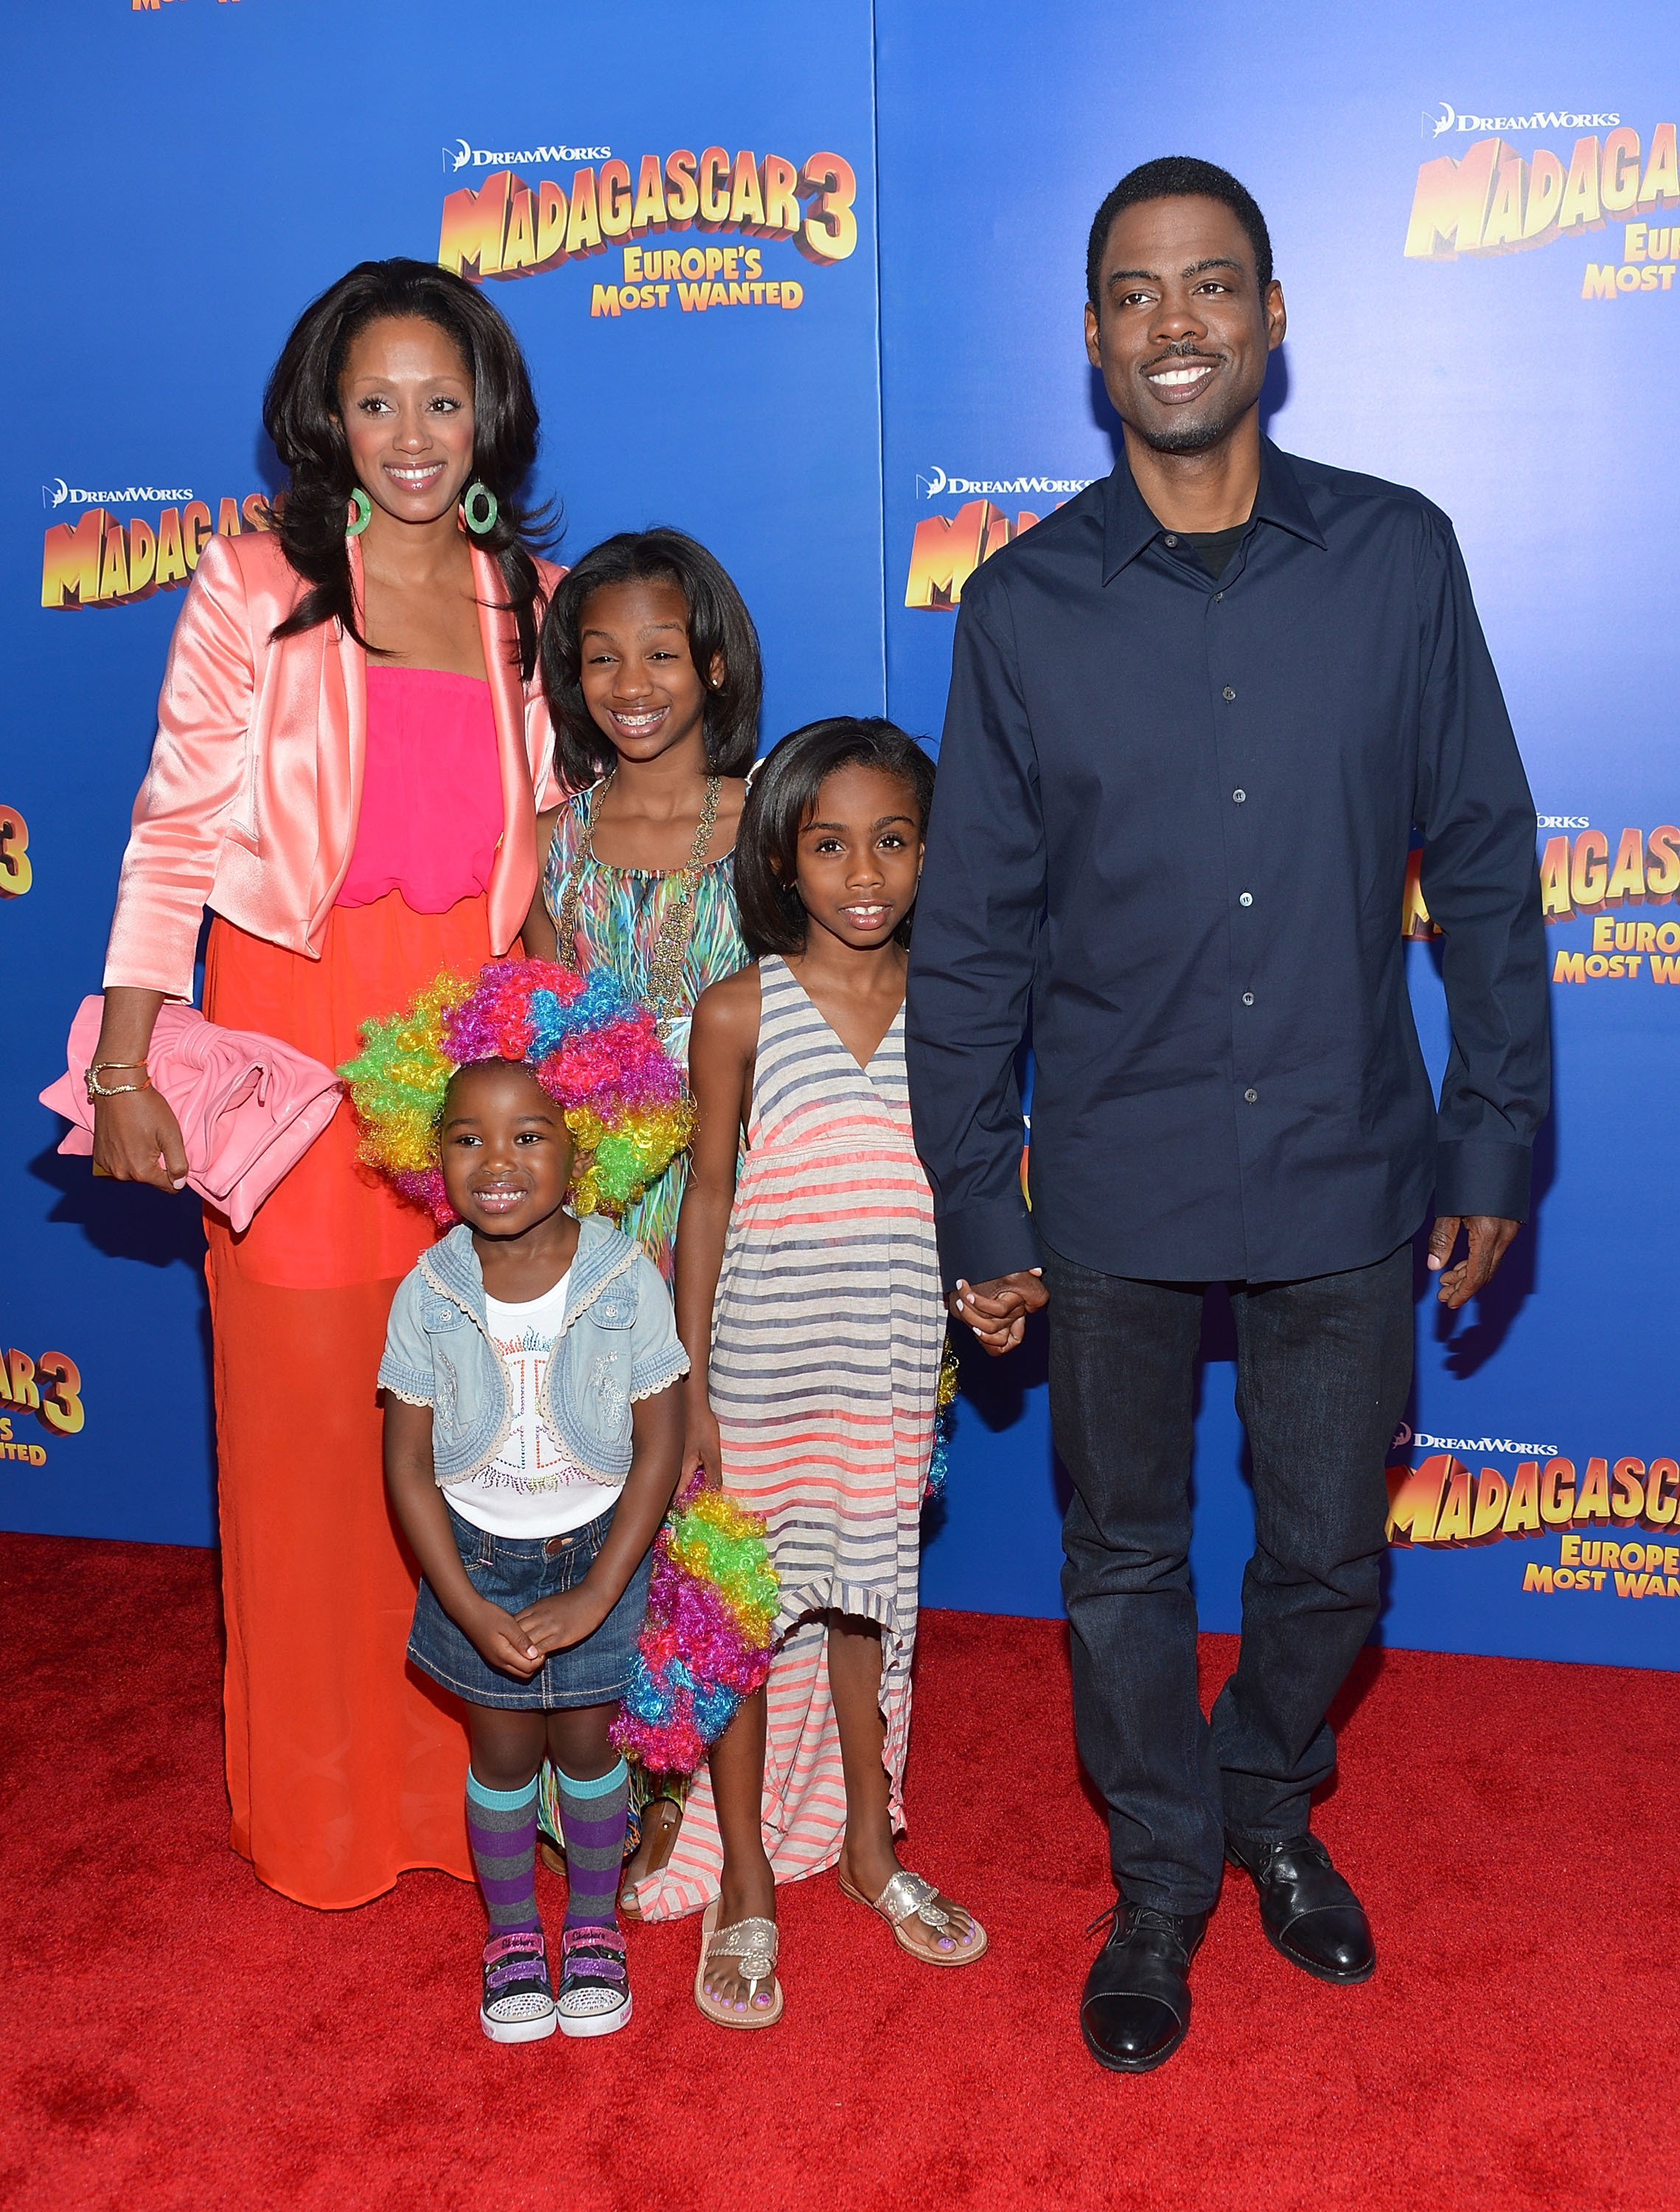 """Malaak Compton, Lola, Zahra, Ntombi and Chris Rock at the """"Madagascar 3: Europe's Most Wanted"""" New York premier 